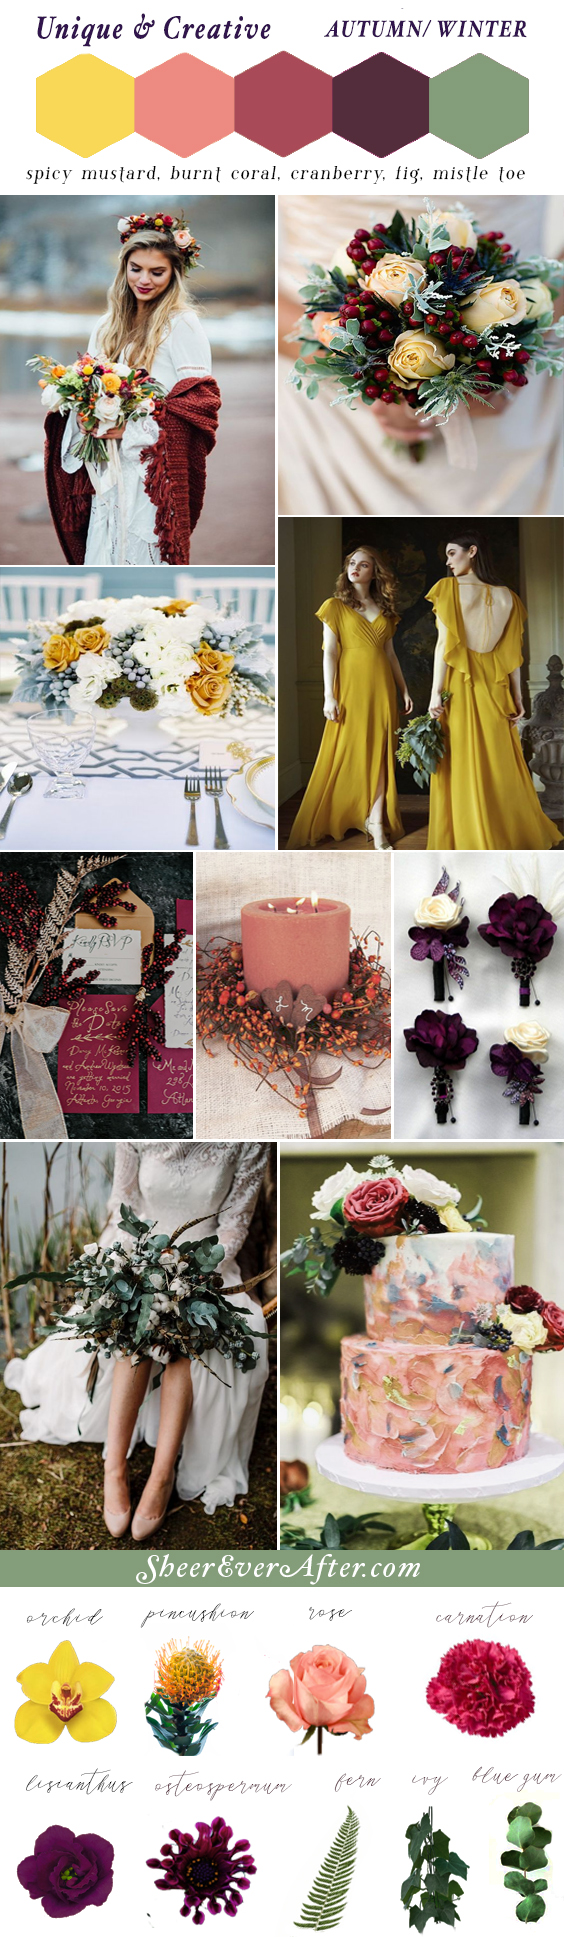 Unique & Creative Wedding Winter and Autumn Color Palette | This and more at www.SheerEverAfter.com